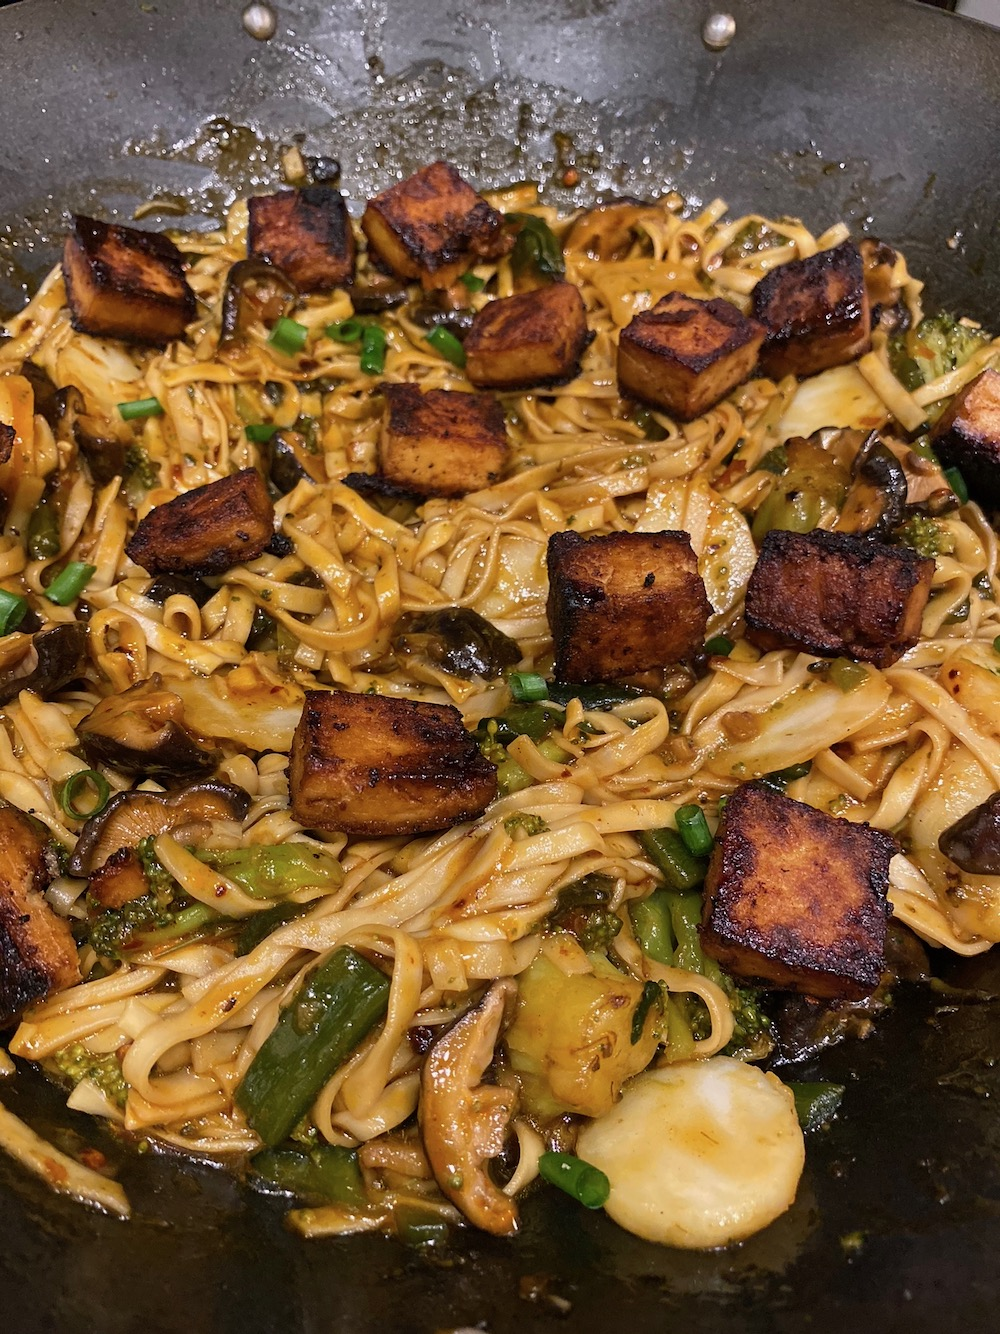 Don't forget to add that tofu!